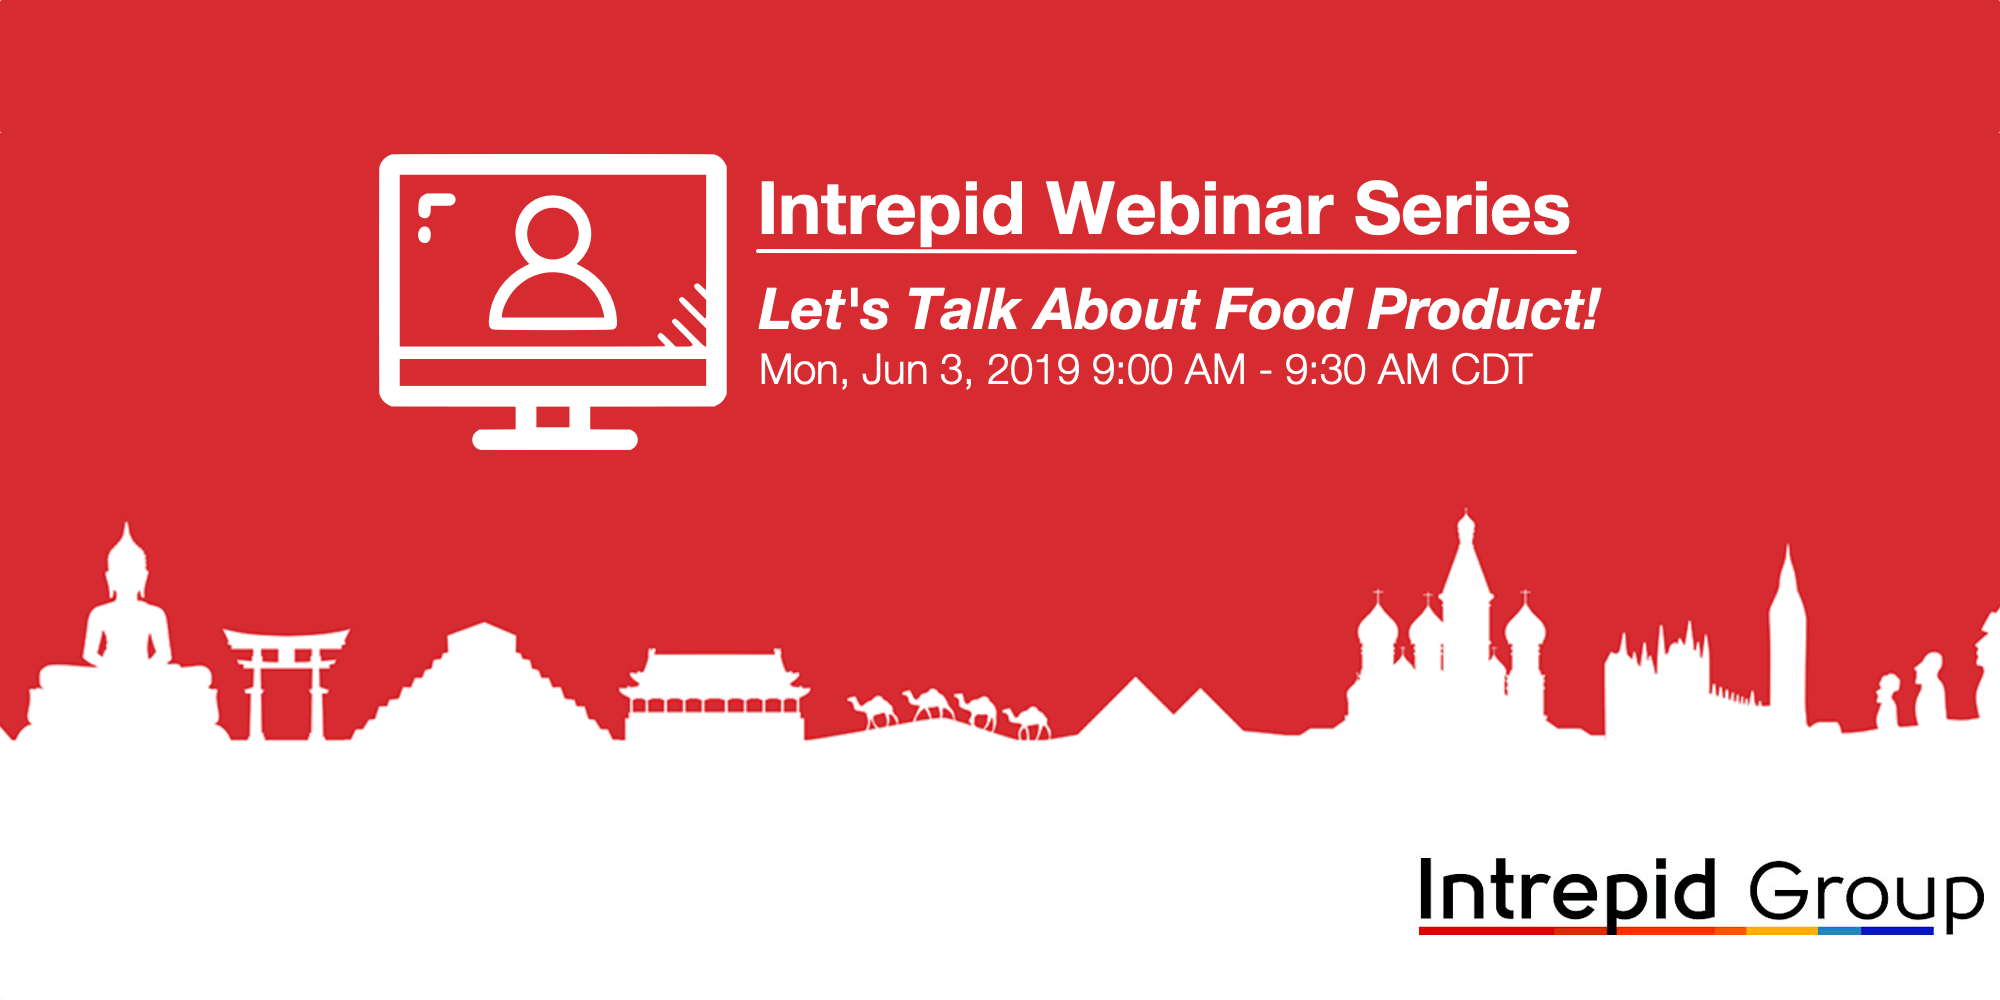 Let's Talk About Food Product!